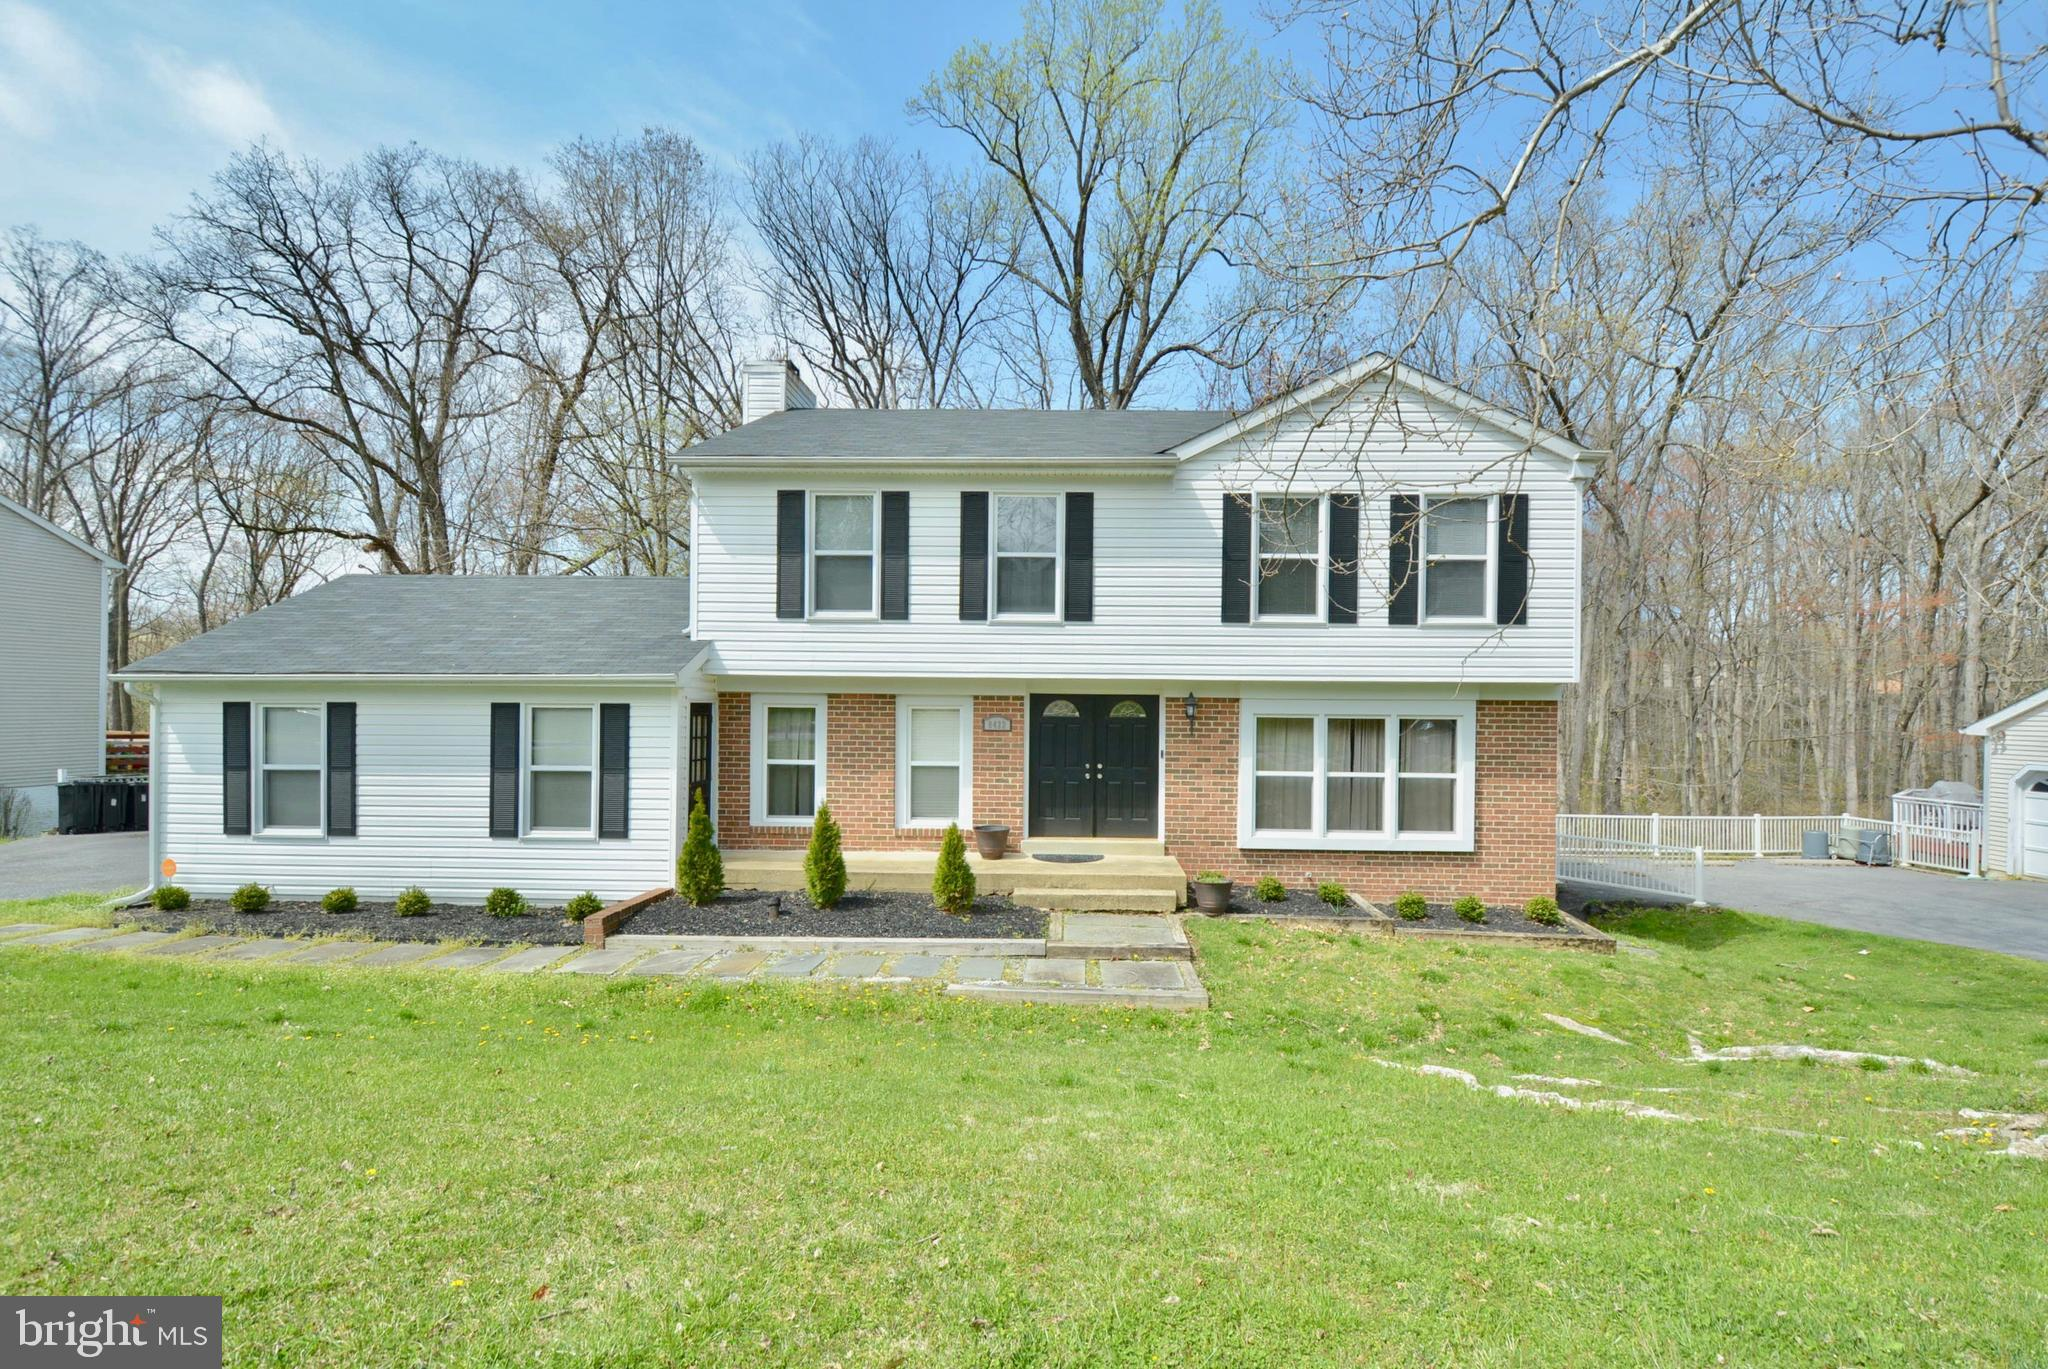 Spring is the Time for buying homes and this Beautifully well maintained Colonial  in the heart of L